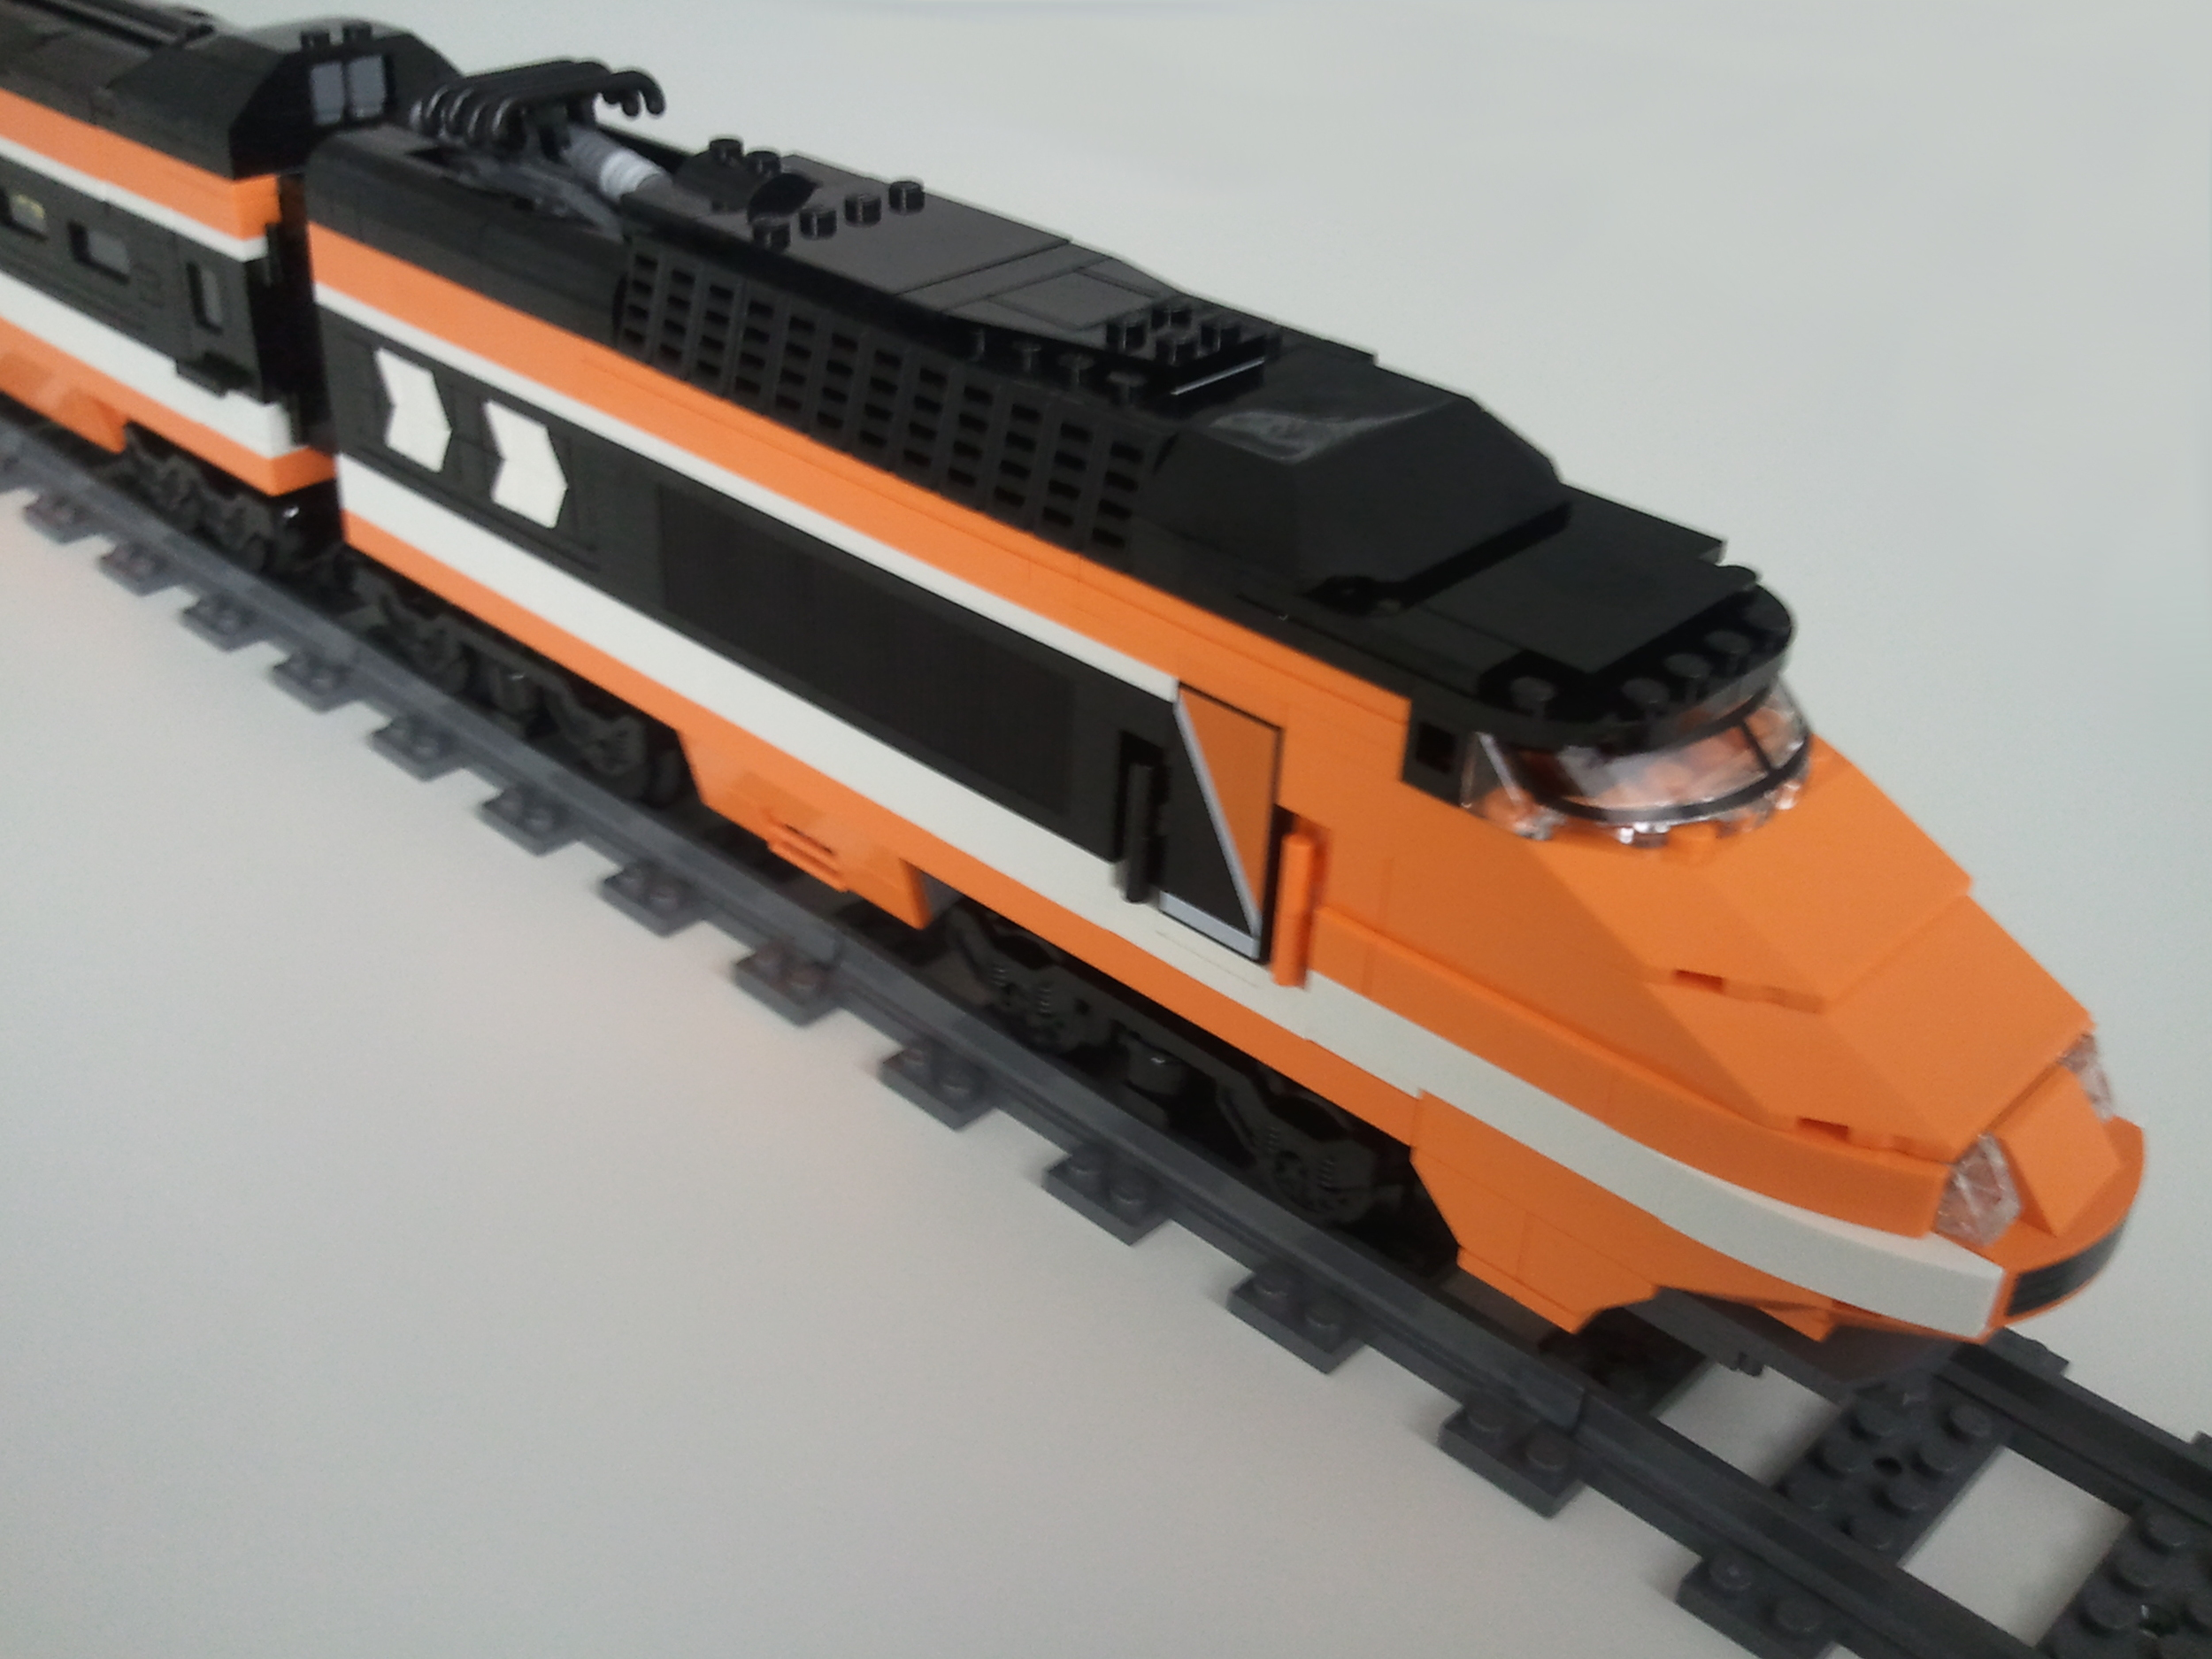 Looks like the old orange TGV